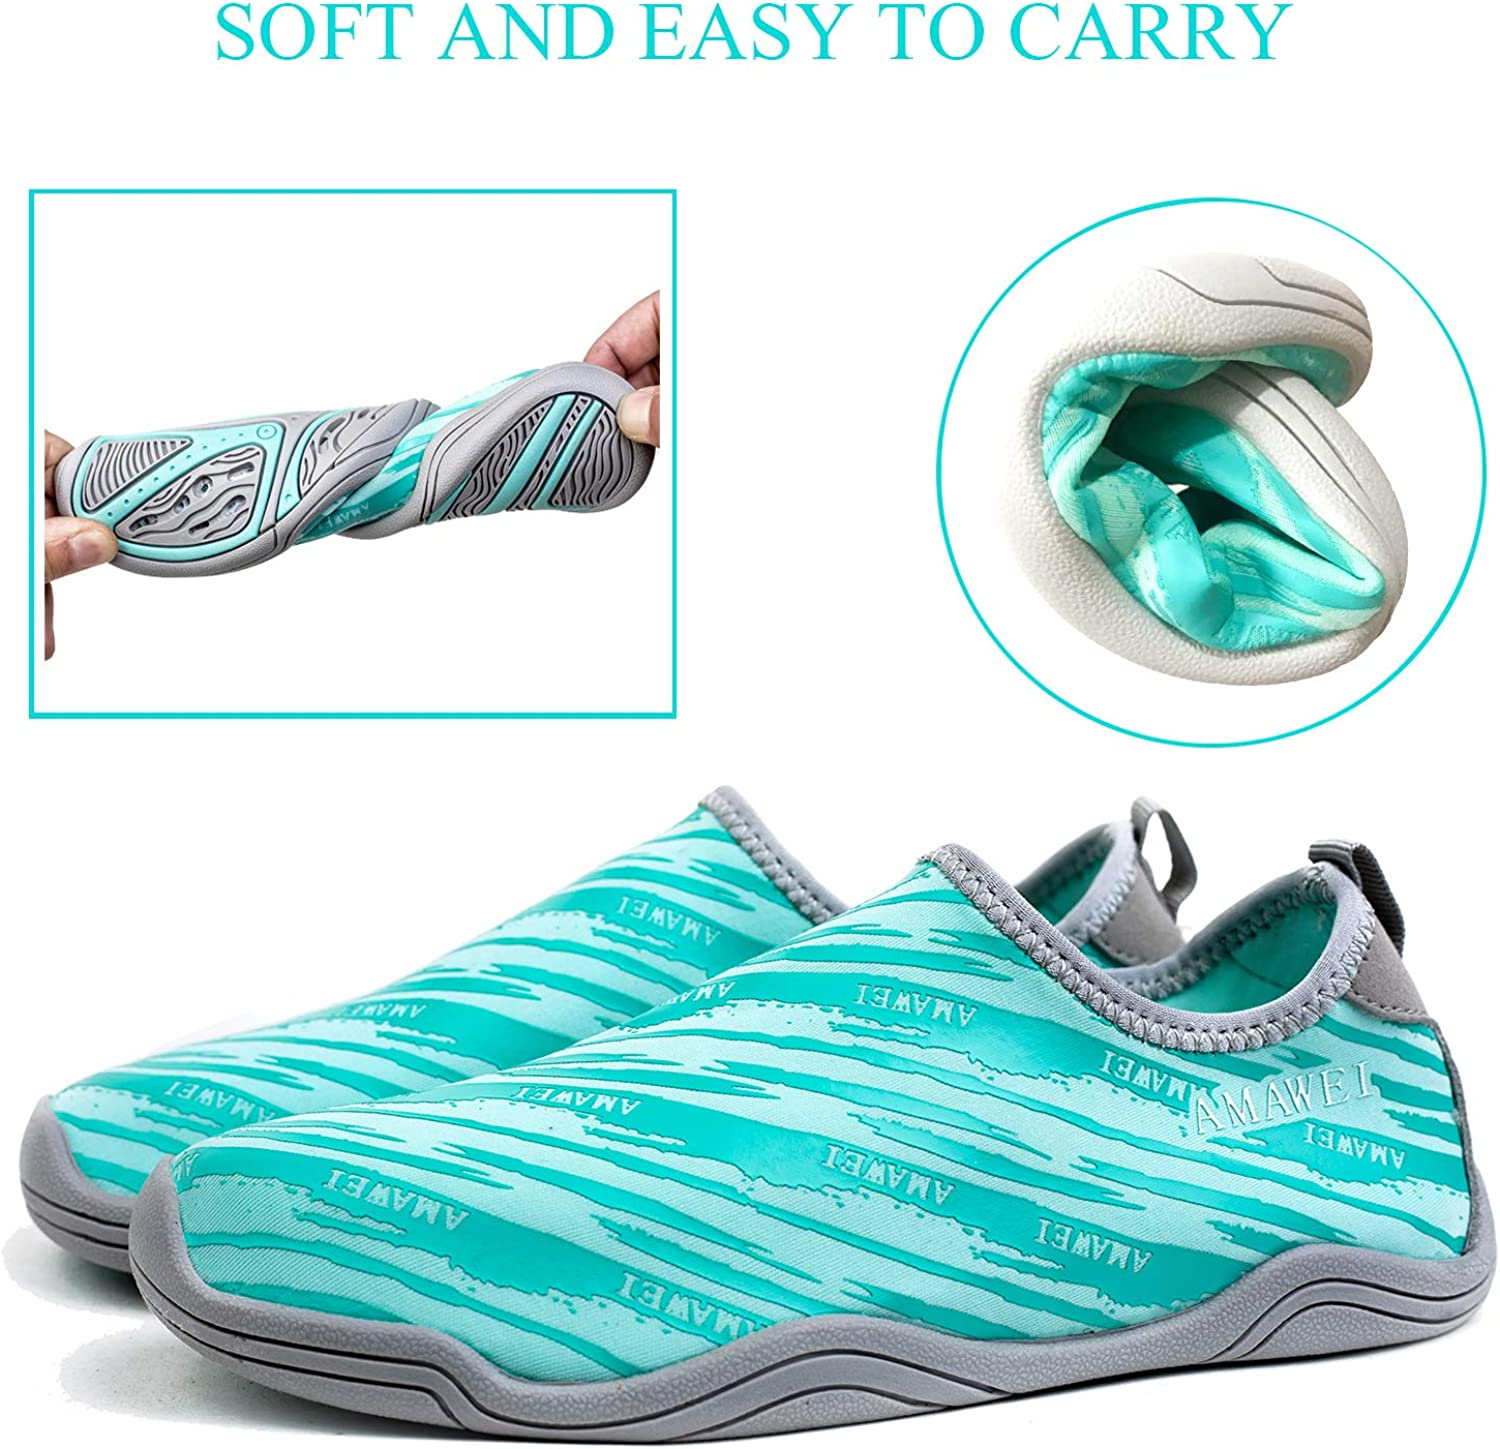 AMAWEI Kids Water Shoes for Boys Girls,Mens Womens Swim Shoes Quick Dry Beach Sports Aqua Shoes for Pool Surfing Walking